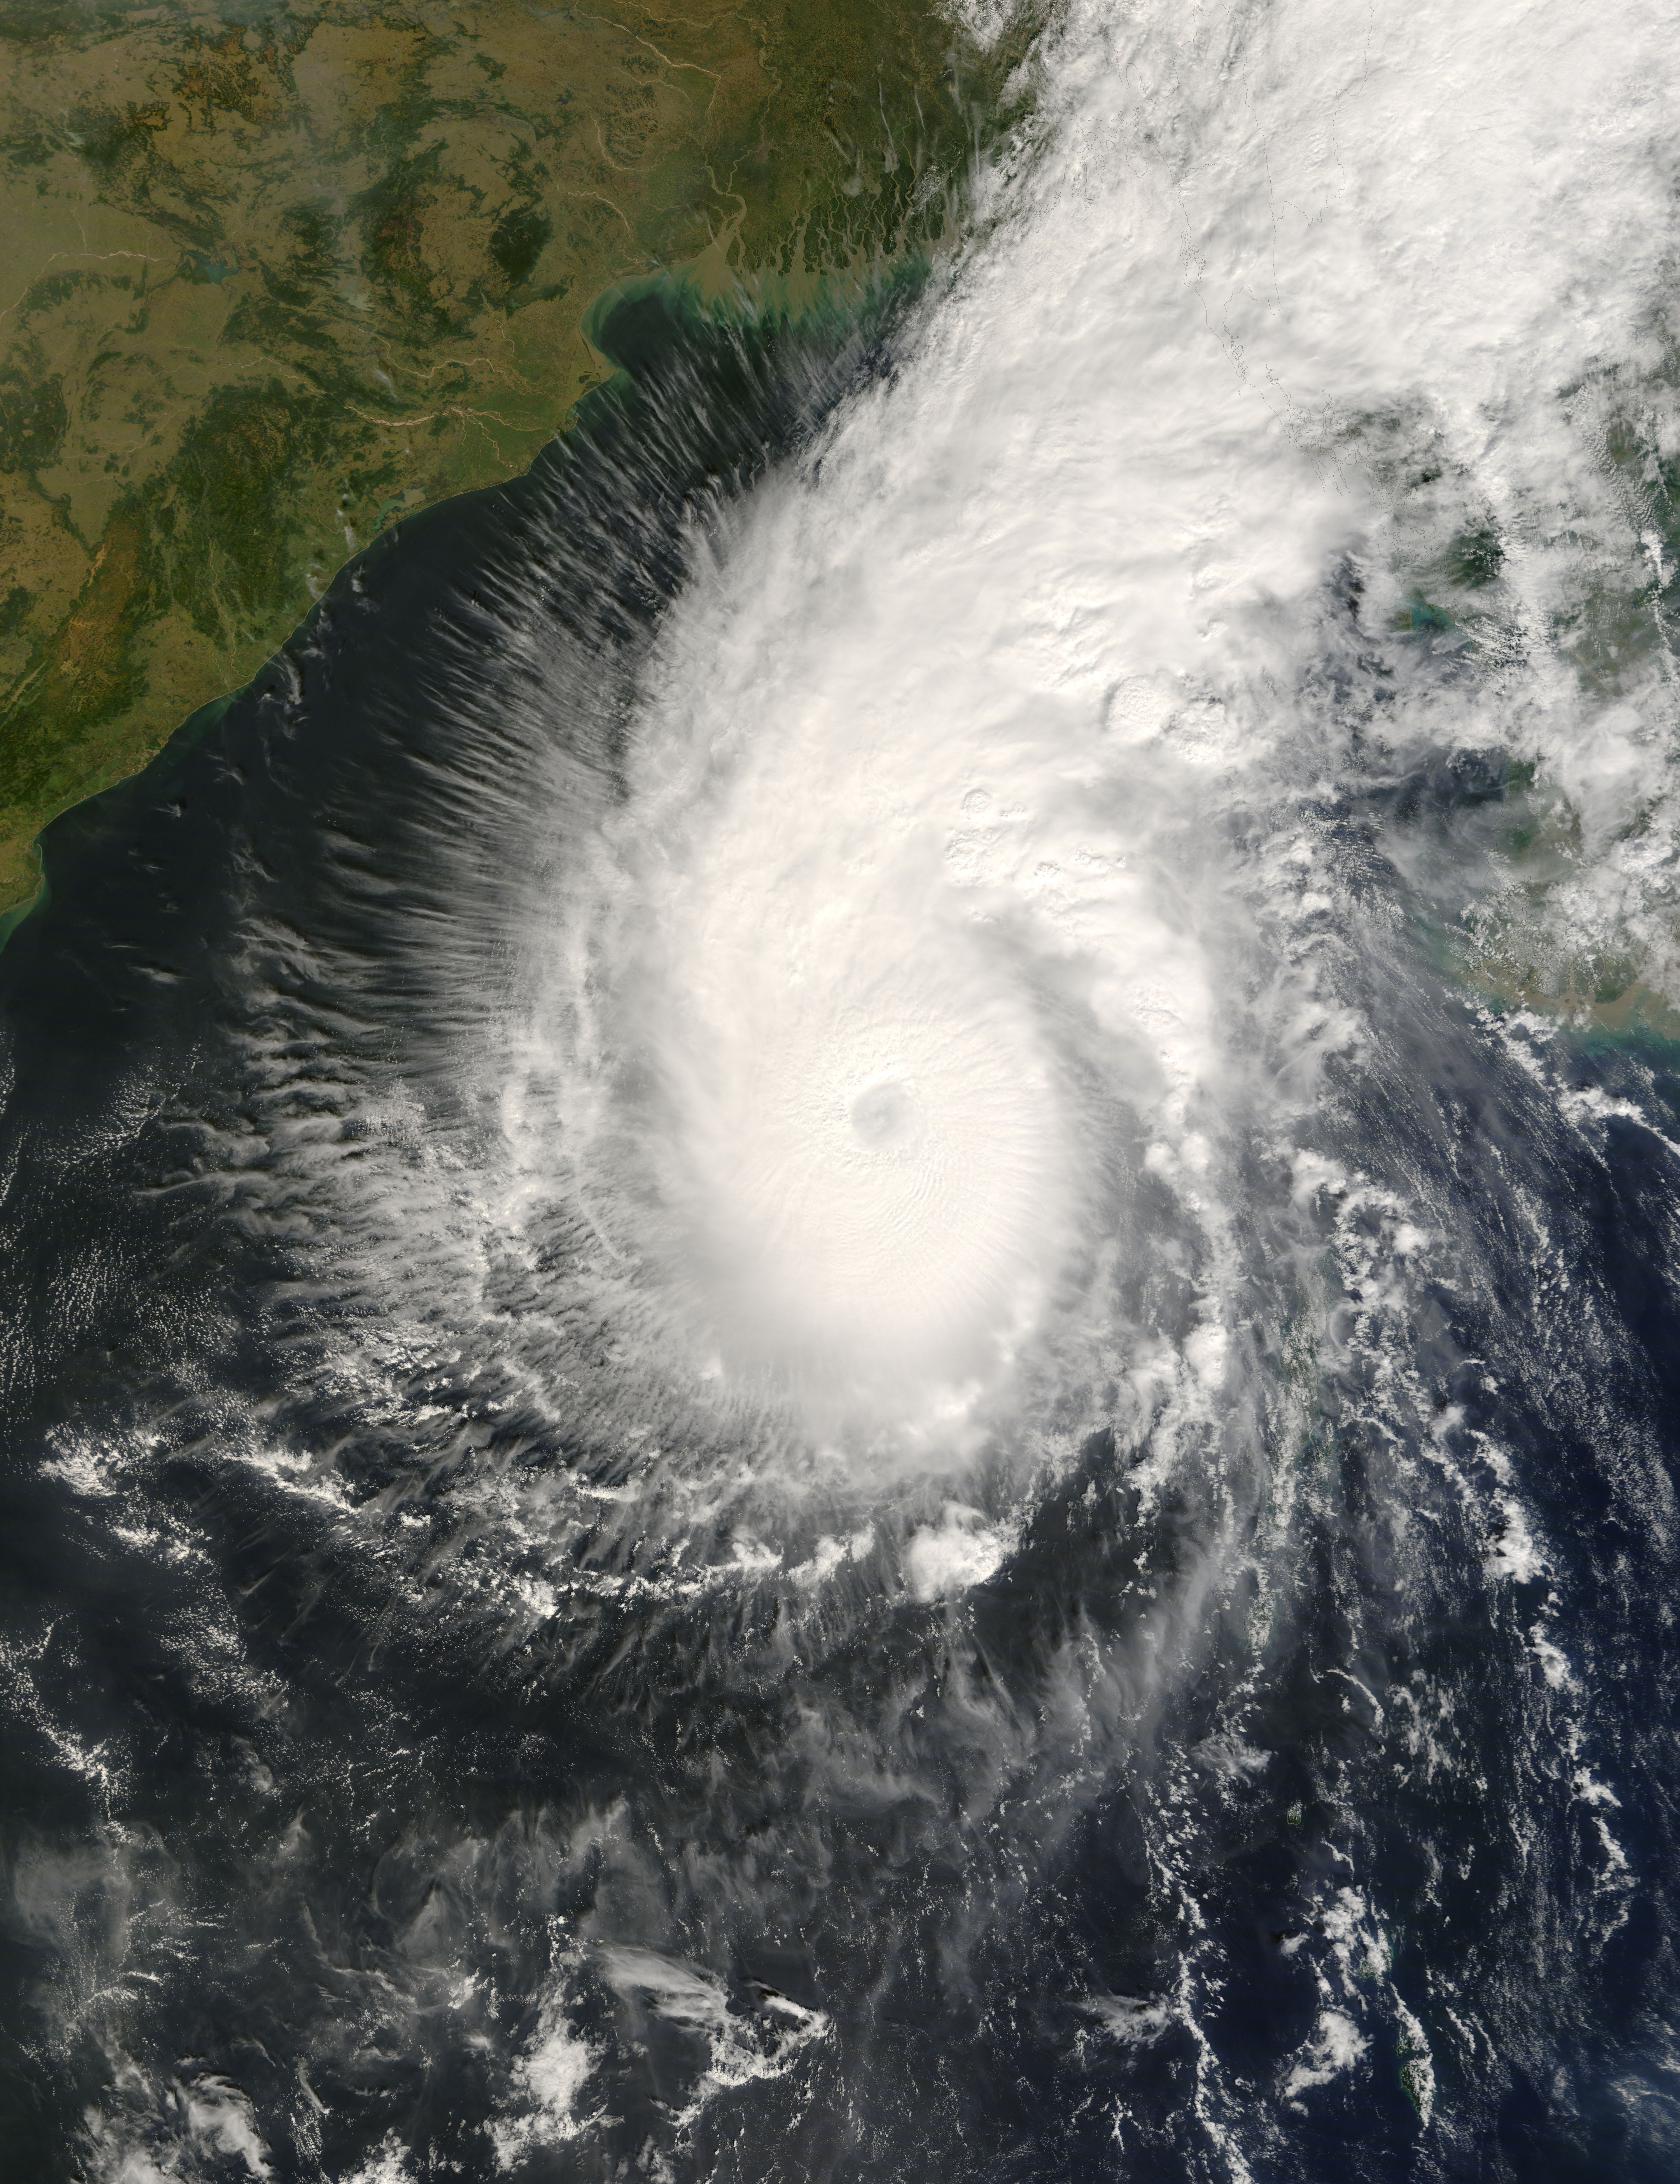 the 1970 cyclone in bangladesh A ppendix background information on the storm surge modelling 1 cyclone hazard in bangladesh by sirajur rahman khan revised by michiel damen, itc.